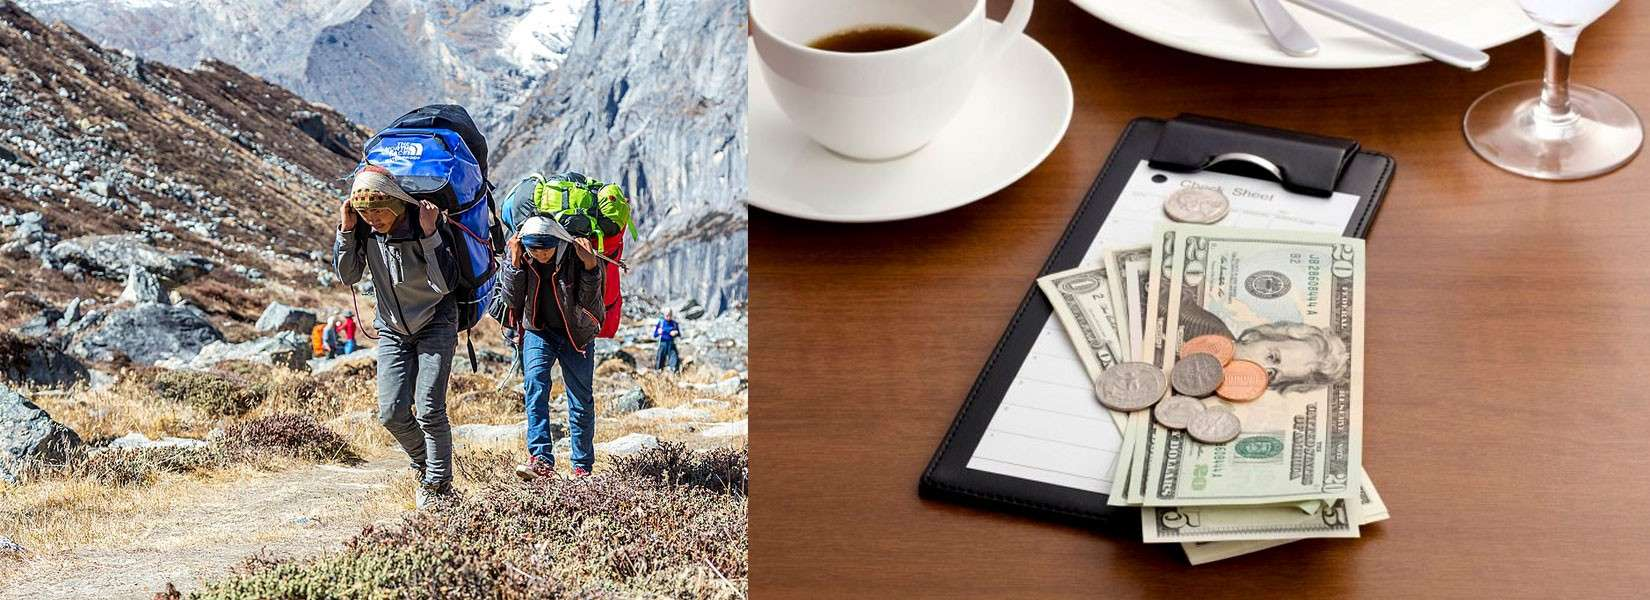 How much to tip guides and porters in Nepal